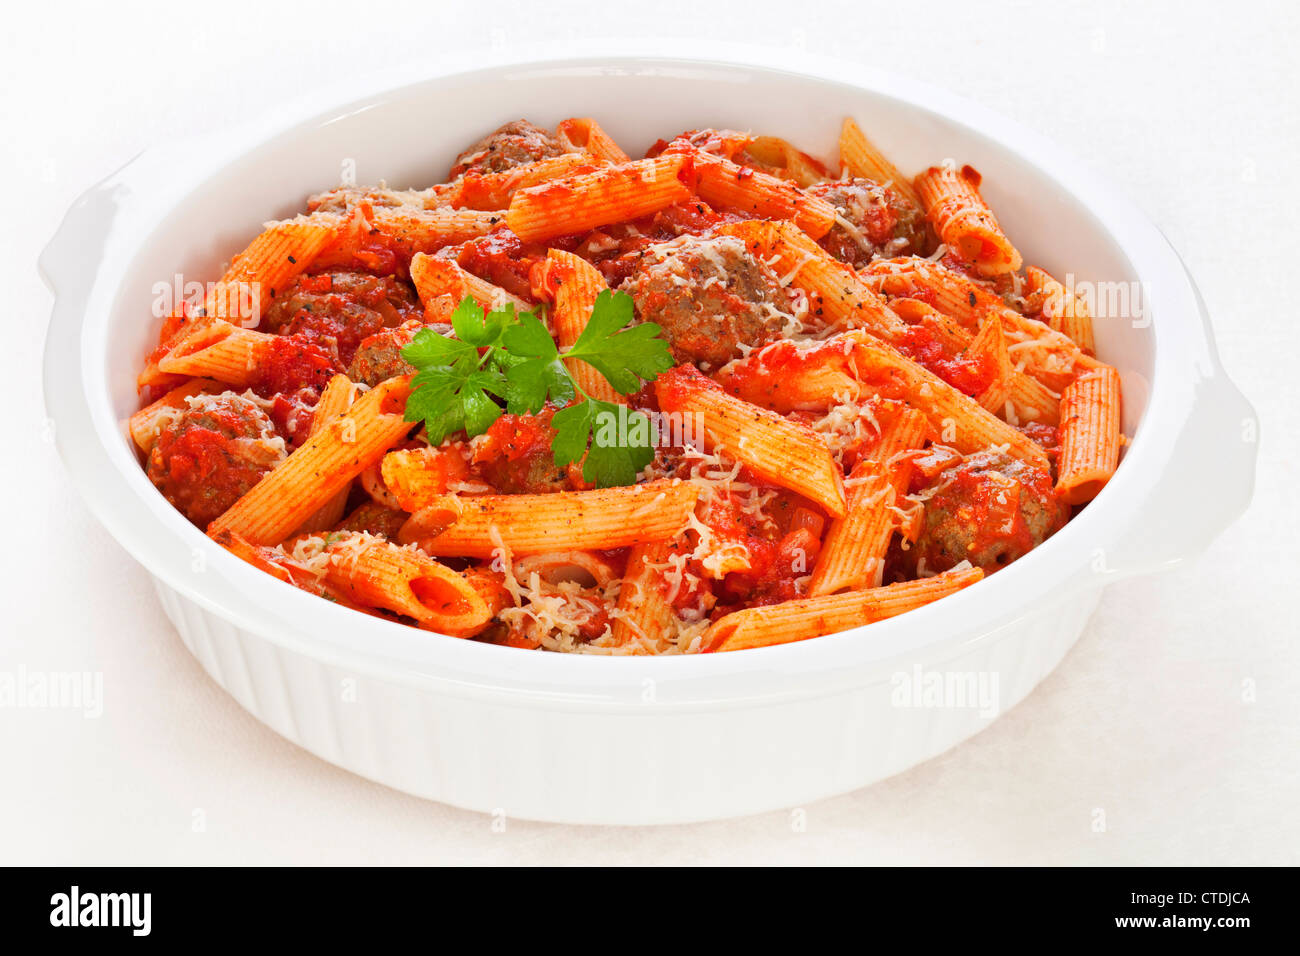 Meatballs in tomato sauce with penne pasta and parmesan cheese, baked in the oven. - Stock Image